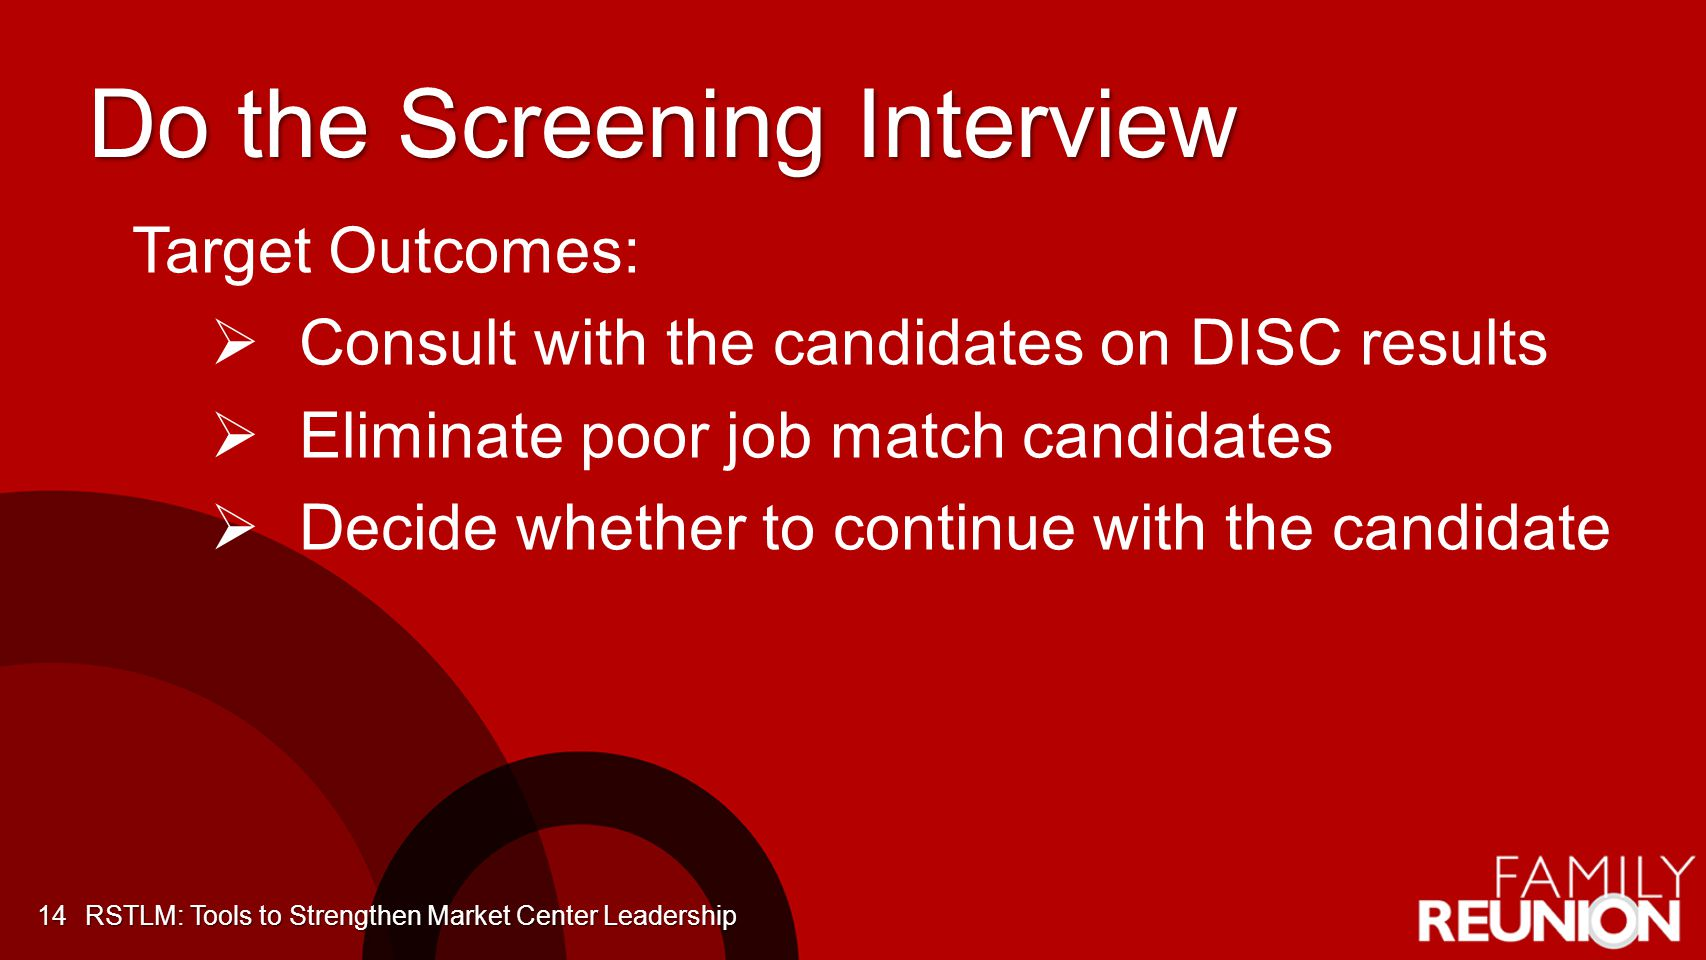 Do the Screening Interview 14 Target Outcomes: Consult with the candidates on DISC results Eliminate poor job match candidates Decide whether to continue with the candidate RSTLM: Tools to Strengthen Market Center Leadership